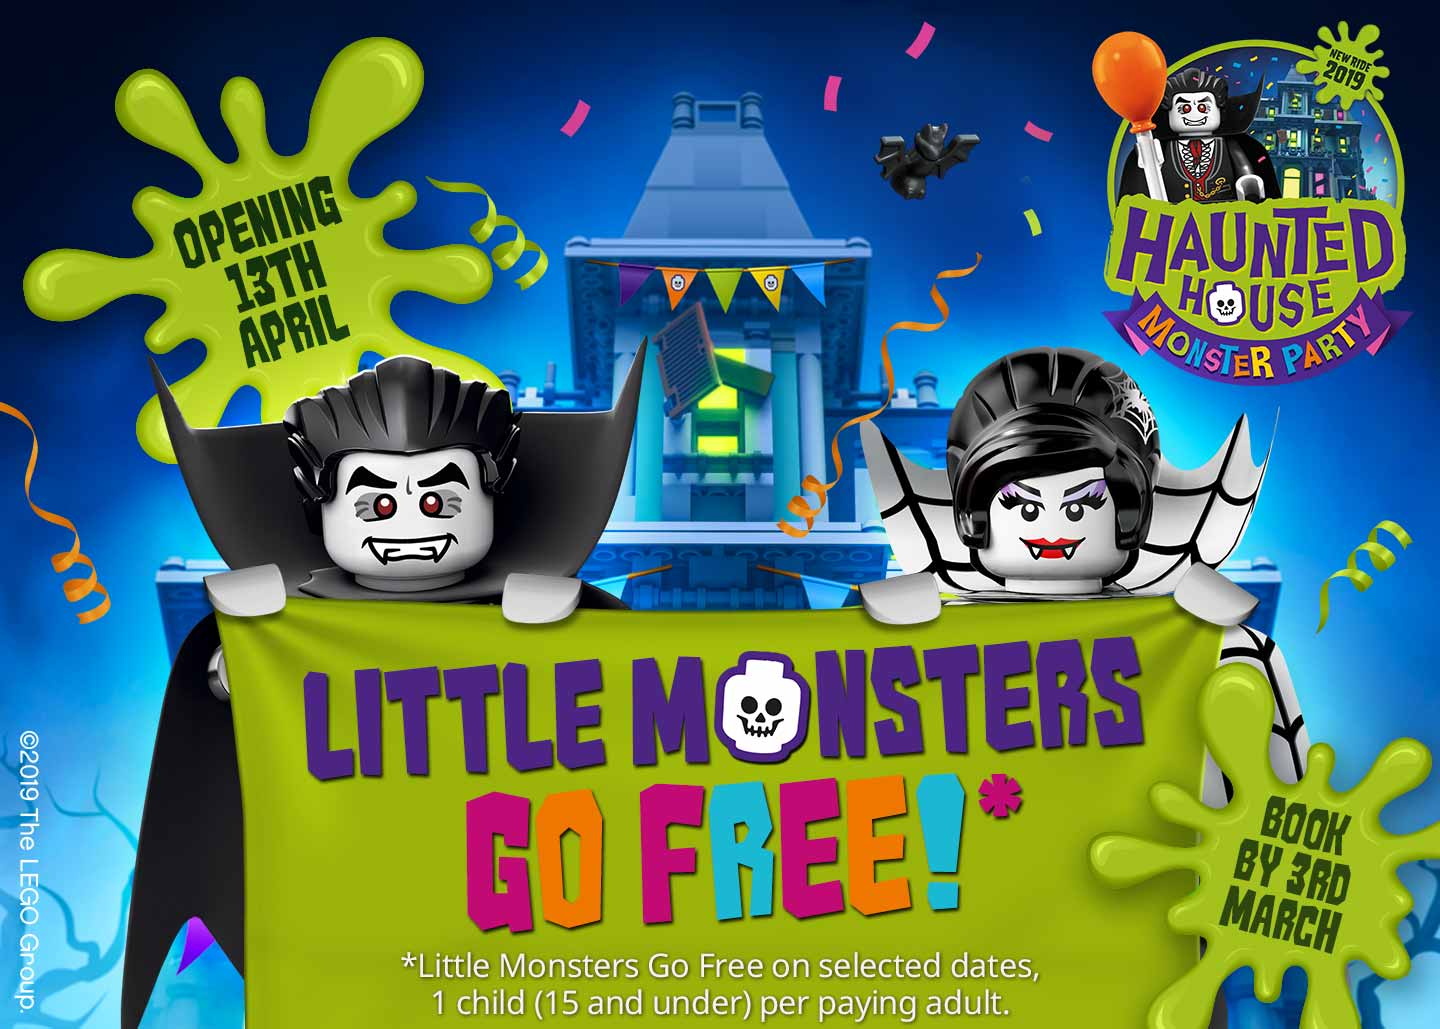 Little Monsters Go FREE in 2019 with LEGOLAND HOLIDAYS